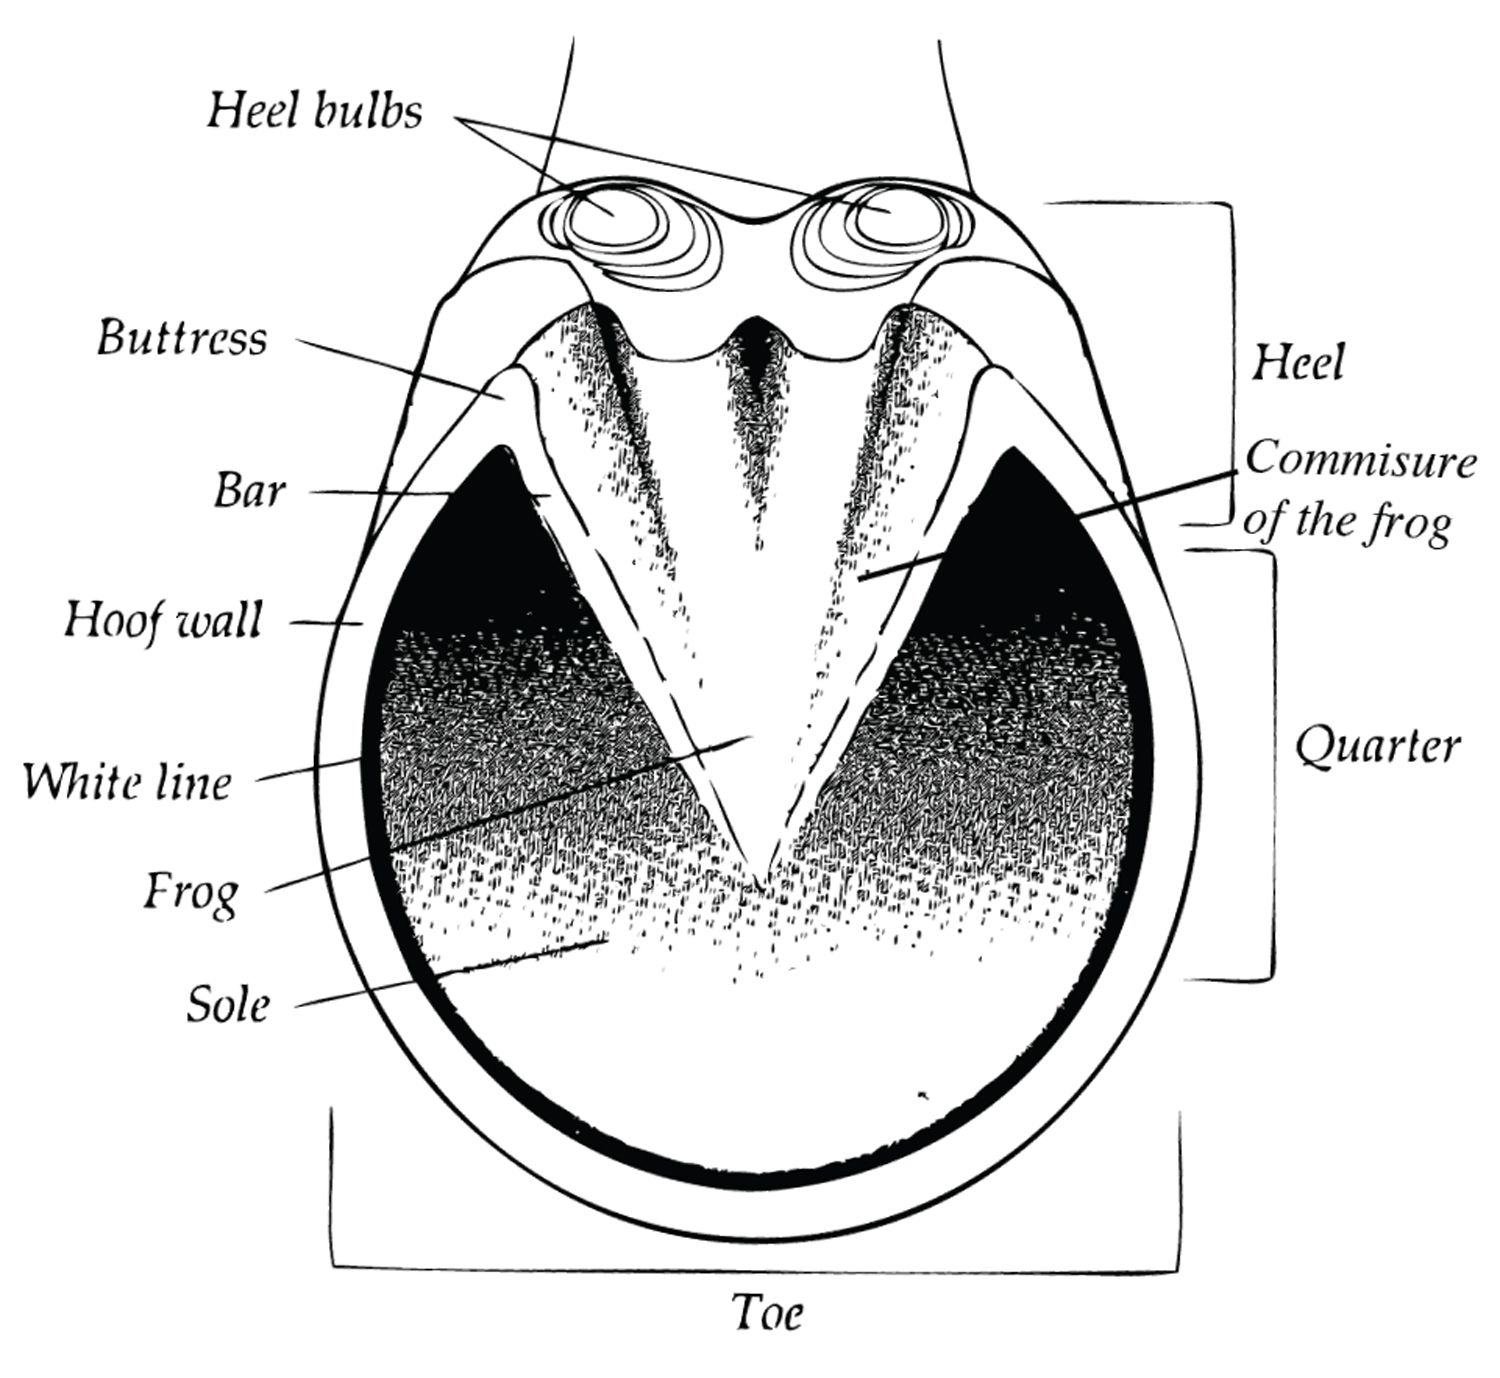 Diagram Of The Parts Of The Equine Hoof Showing Heel